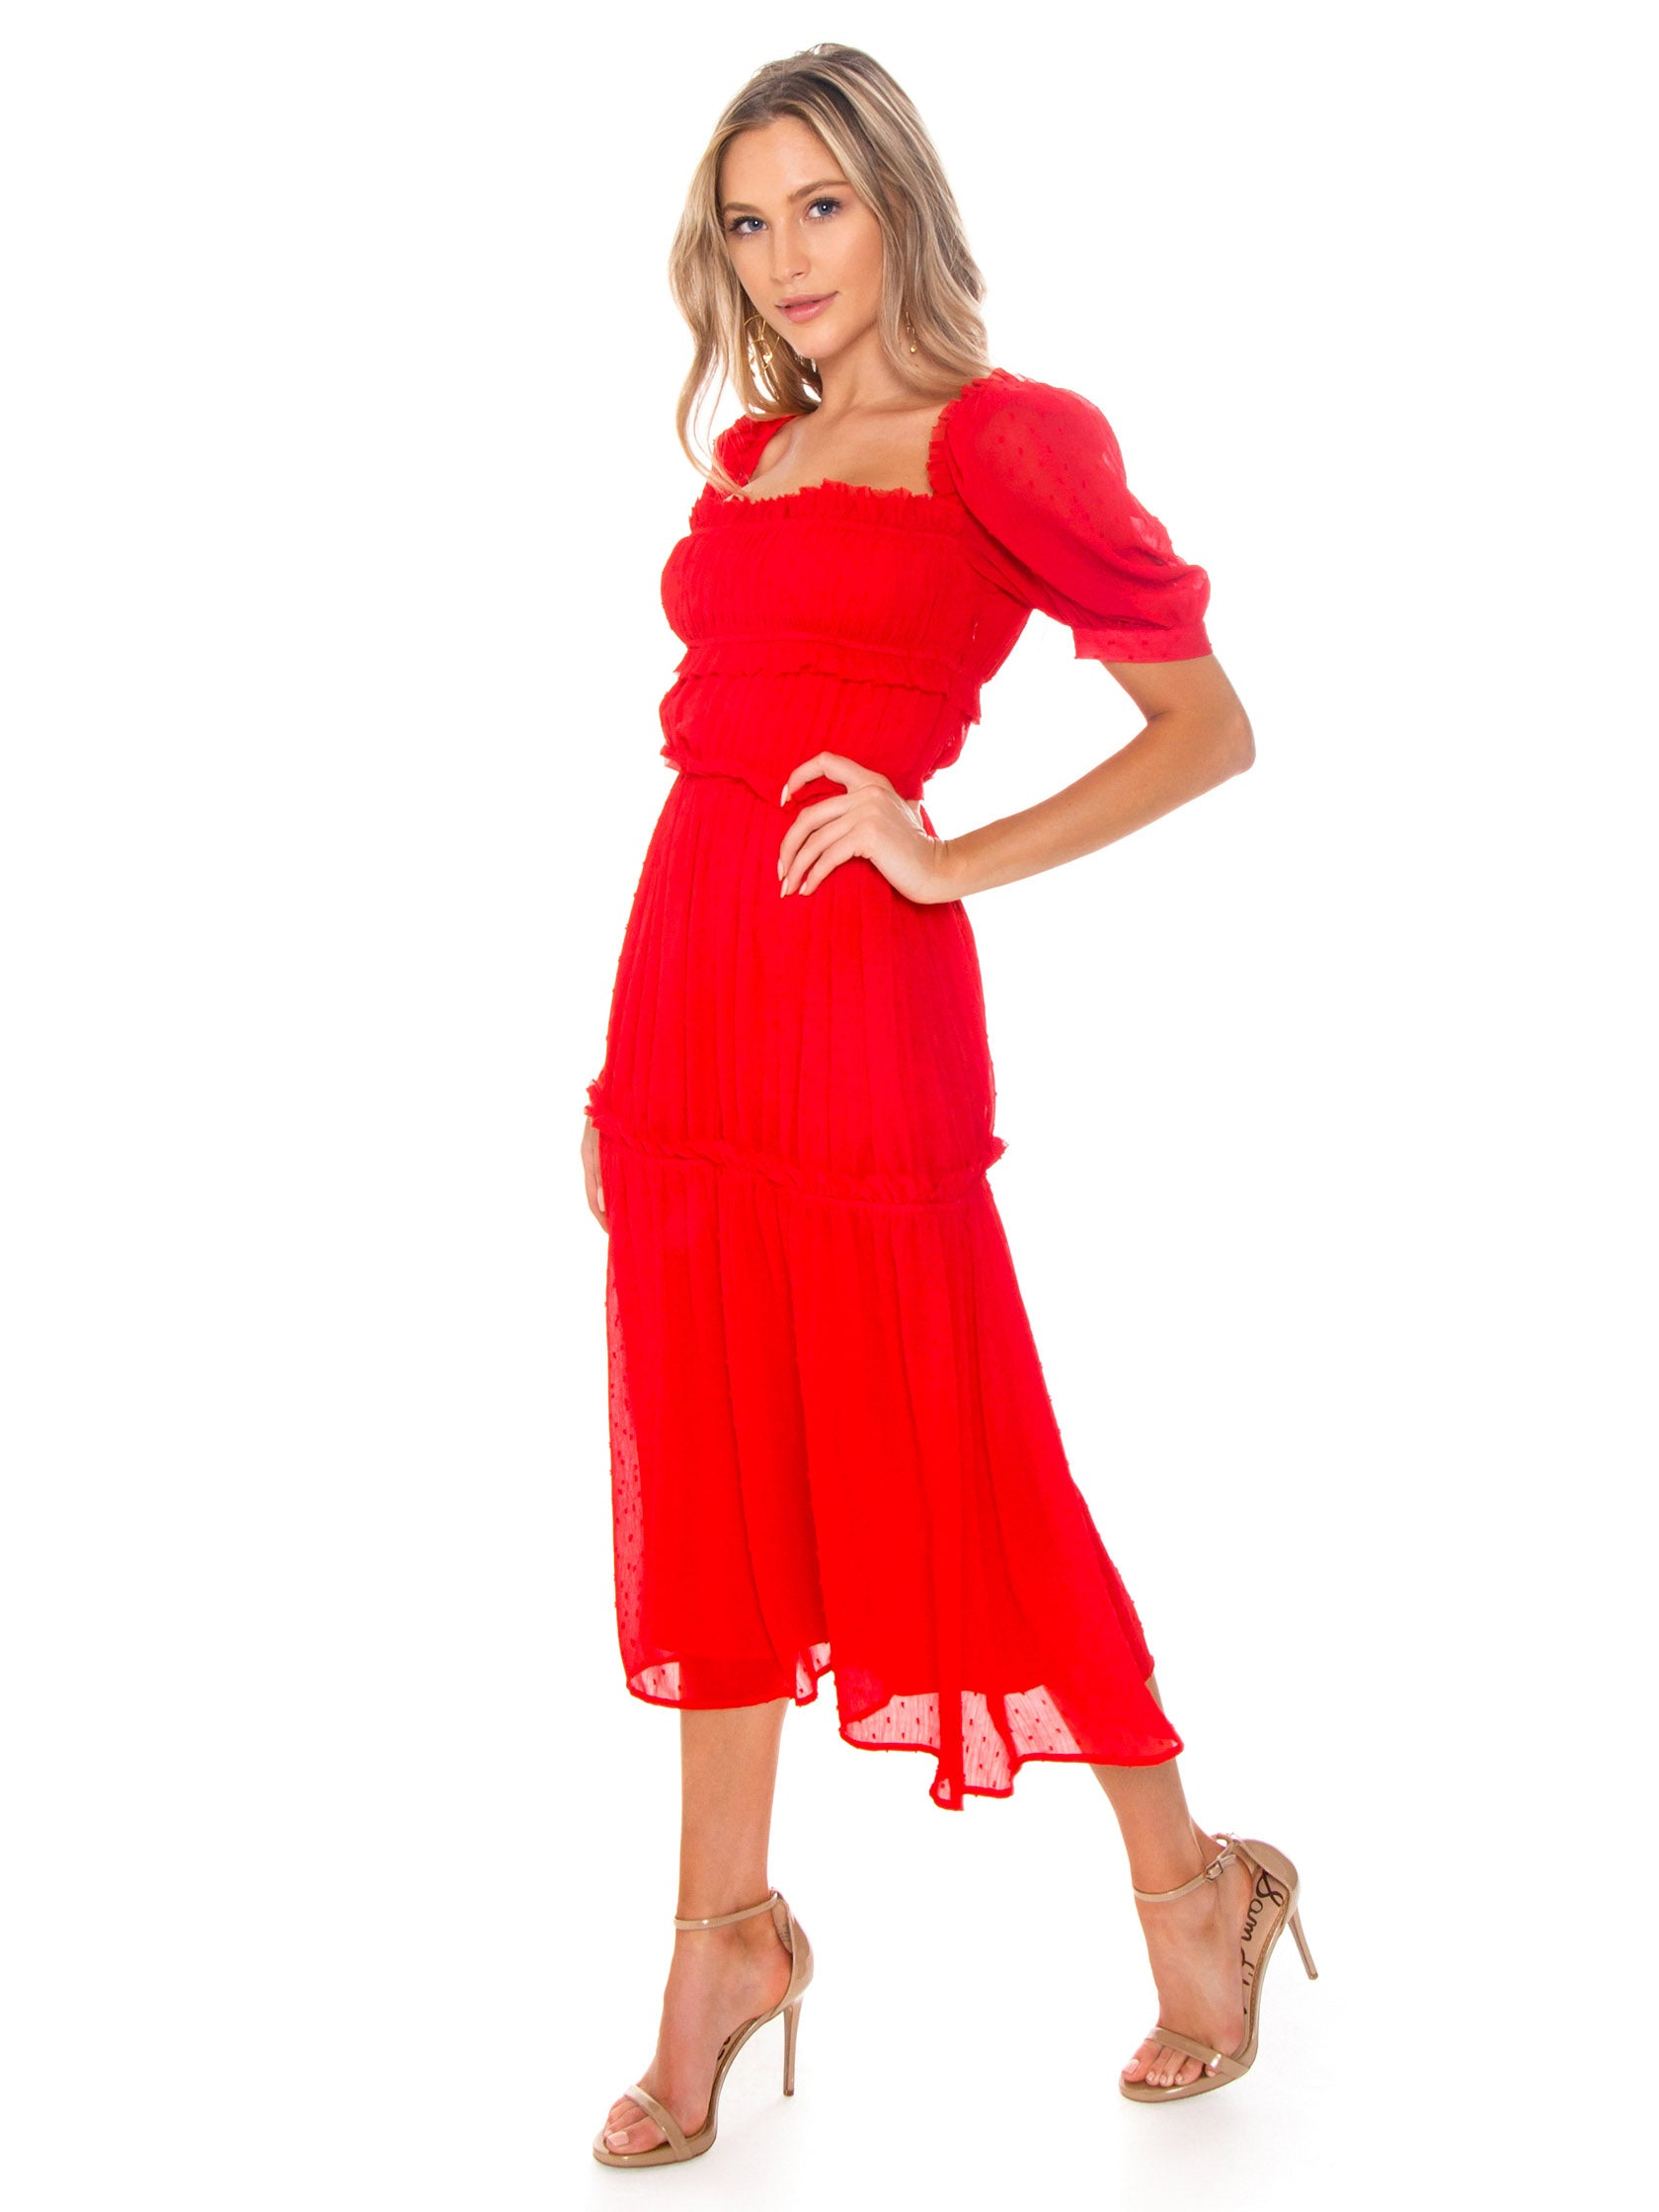 Woman wearing a dress rental from Lani The Label called The Poppy Dress